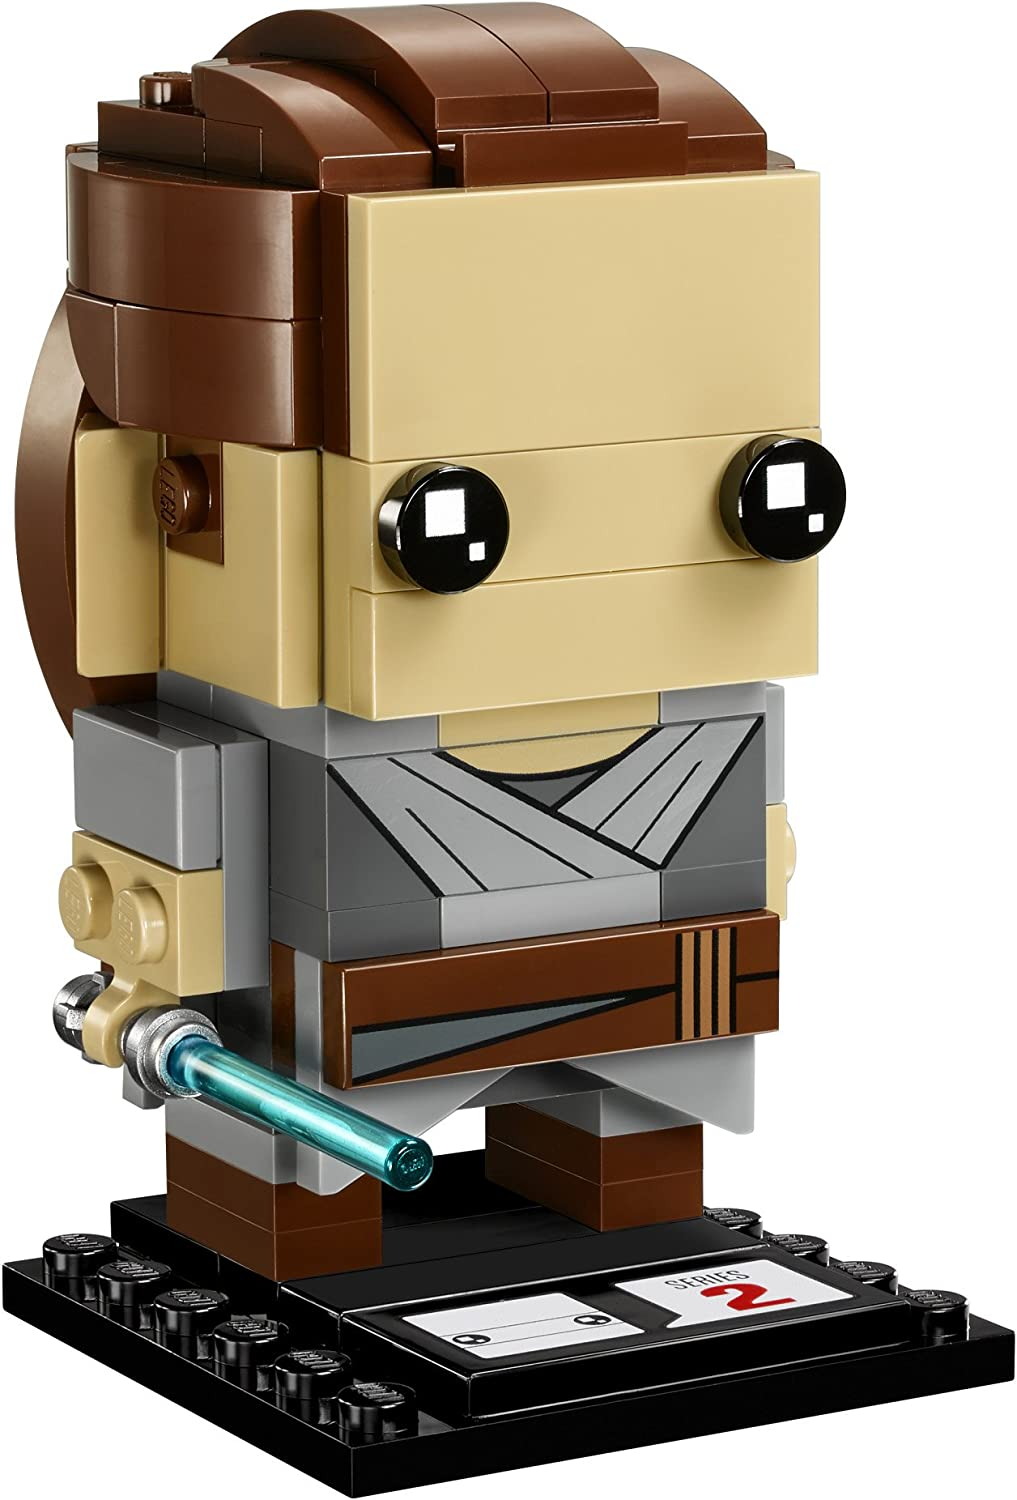 LEGO BrickHeadz Rey 41602 Building Kit (119 Piece)